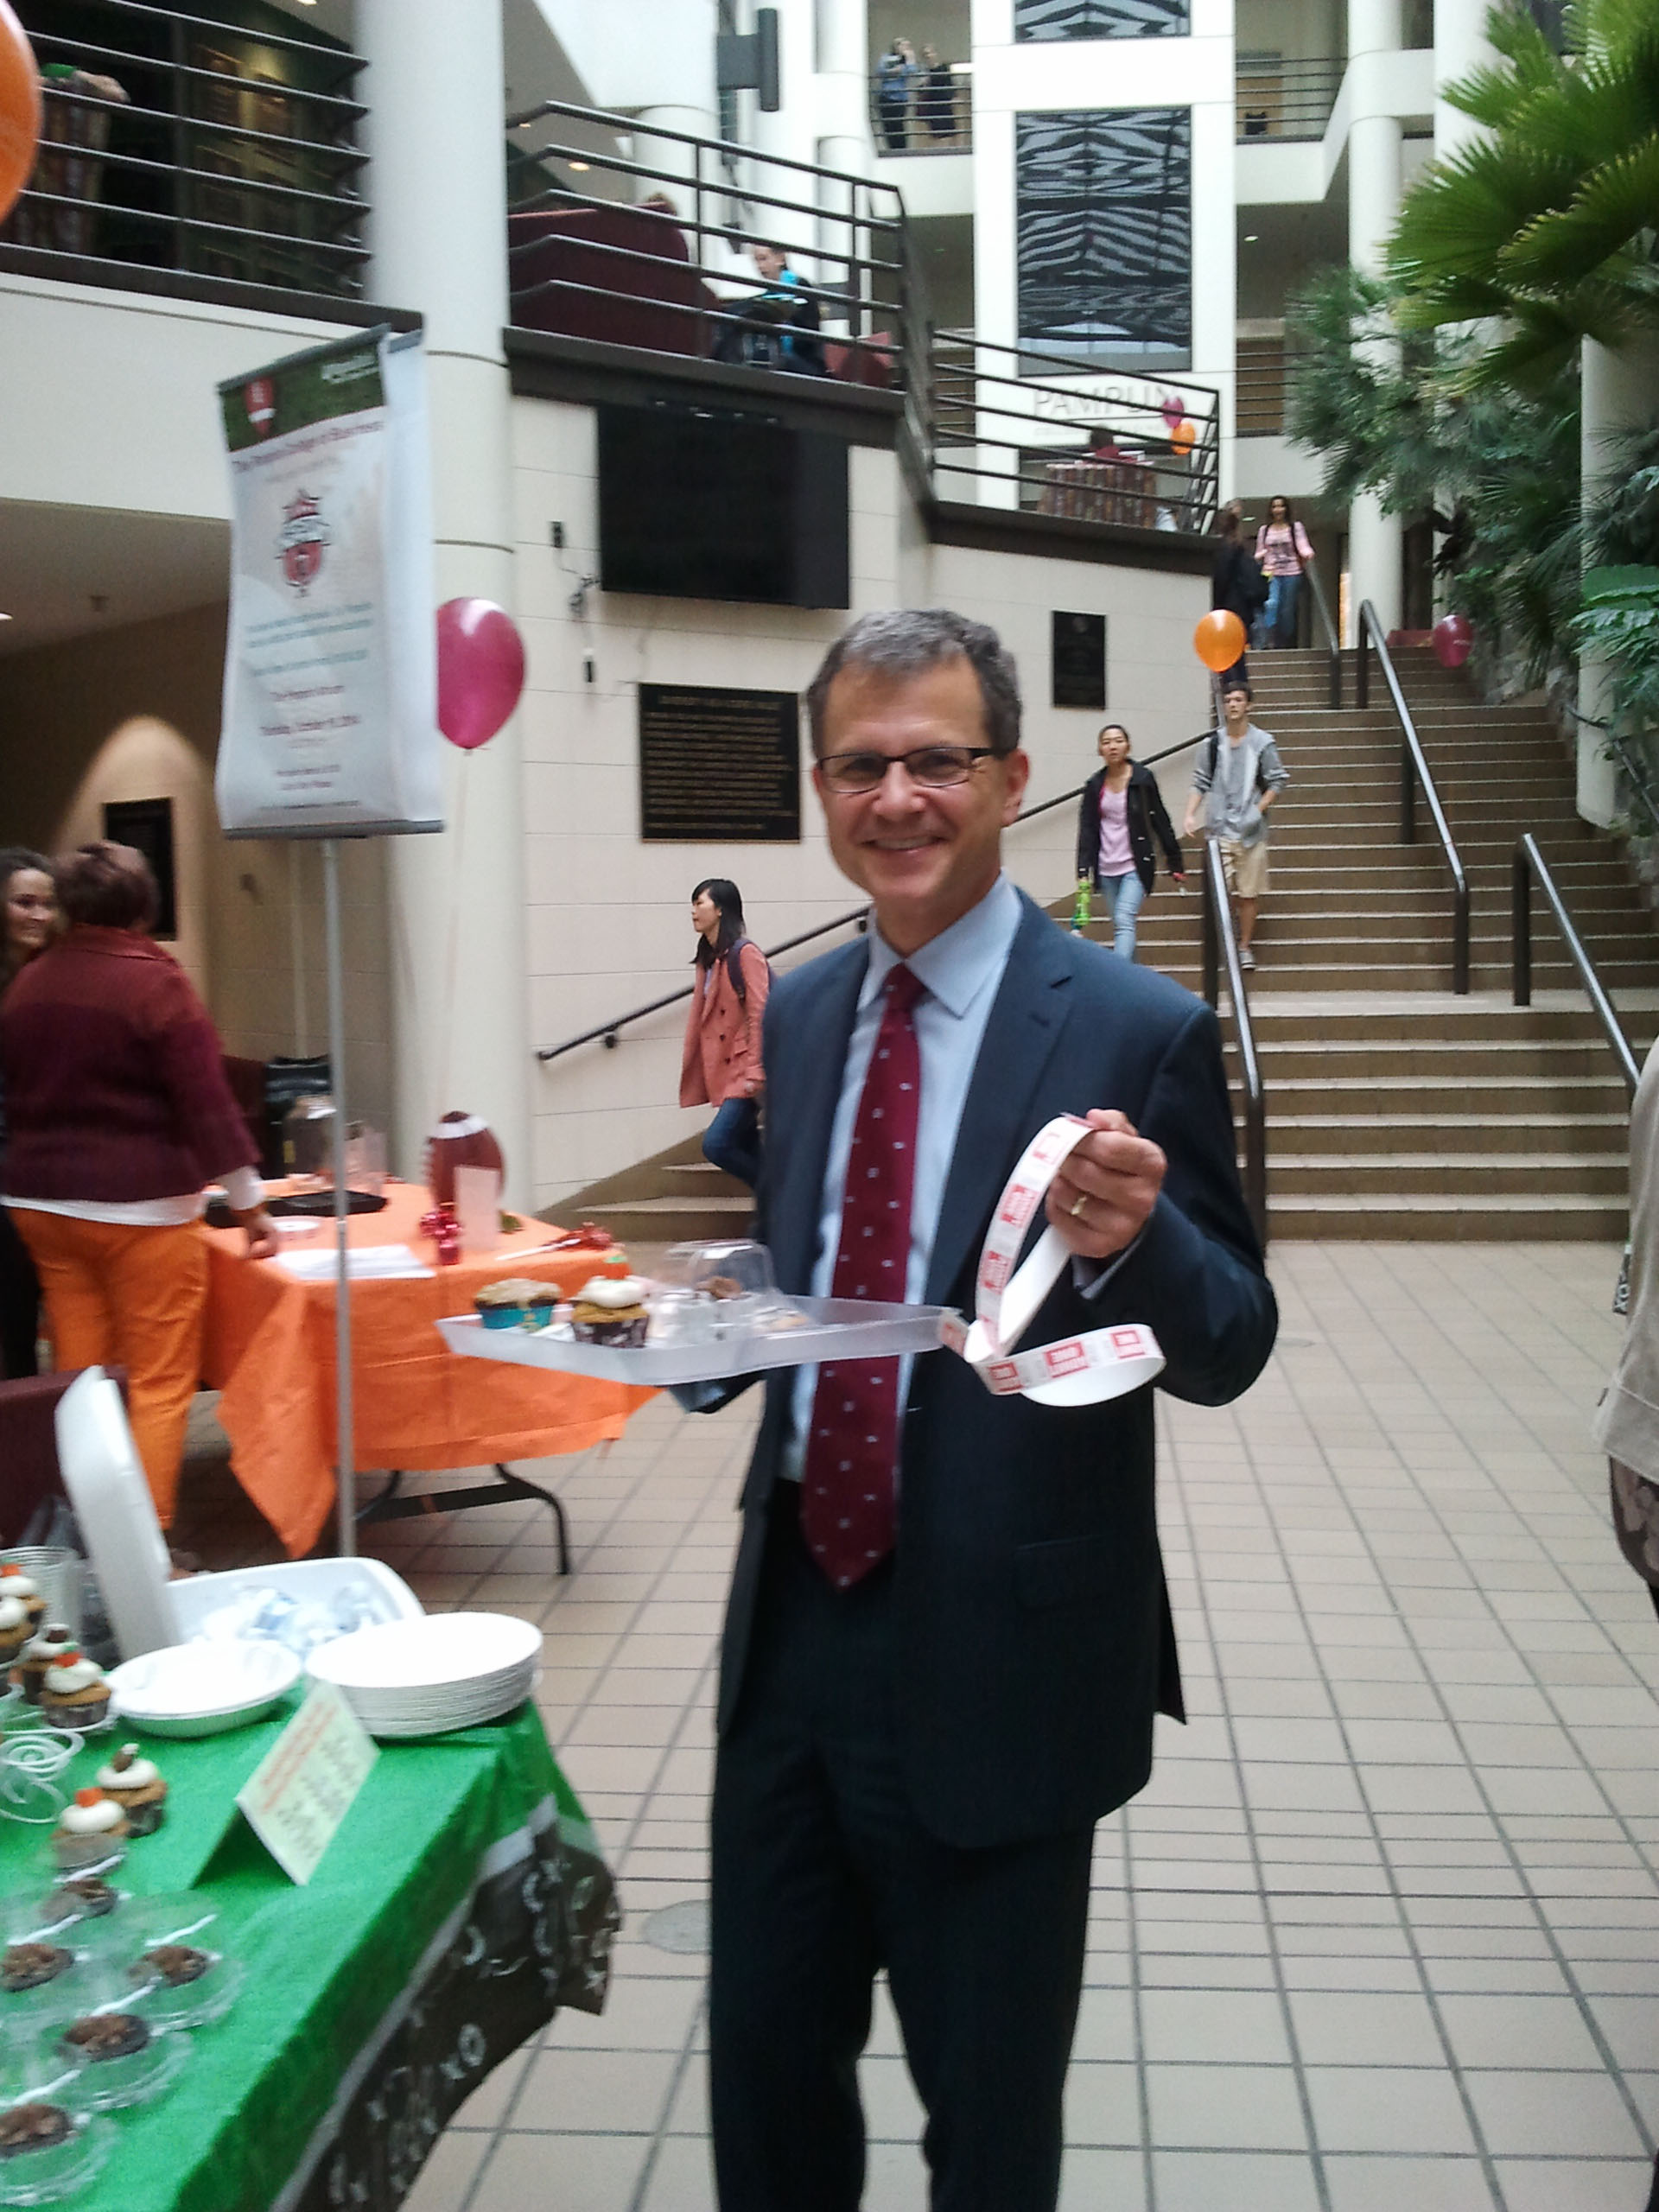 Pamplin dean Robert Sumichrast holds the tray of baked goods that he bought at one of the fundraisers the college's faculty and staff organized to support the CVC.